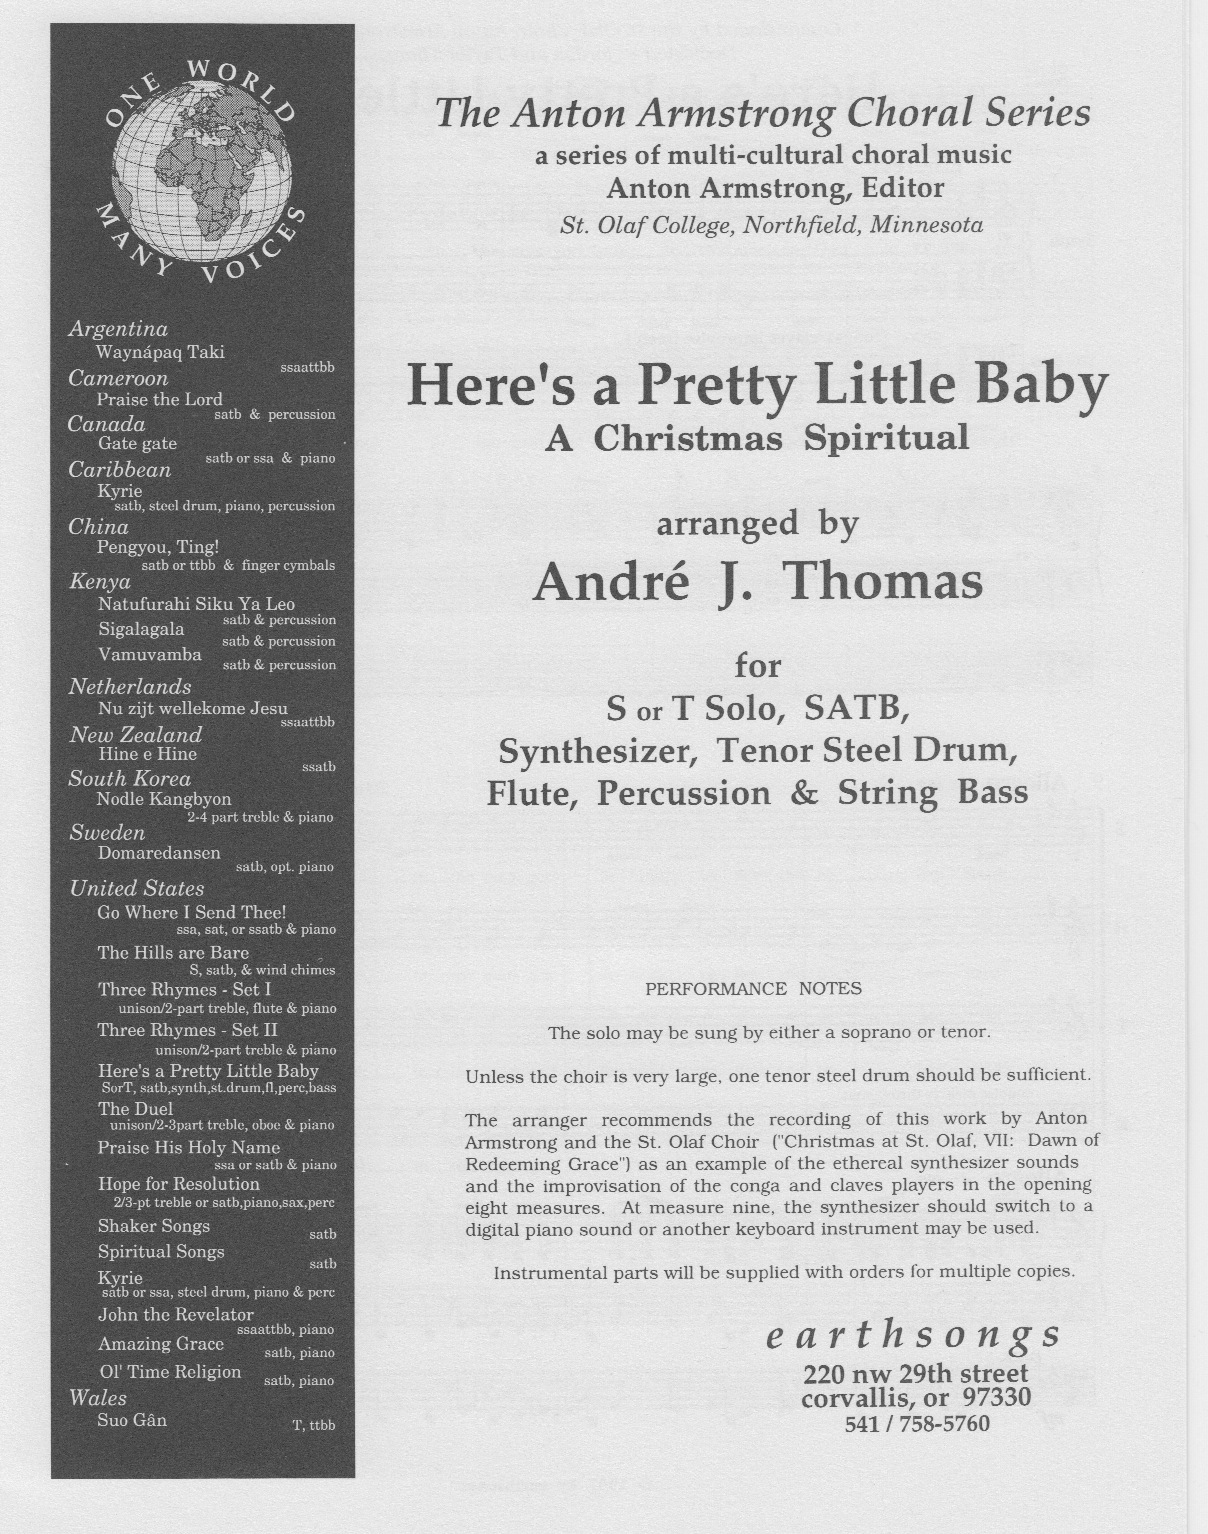 here's a pretty little baby (parts) (pdf)